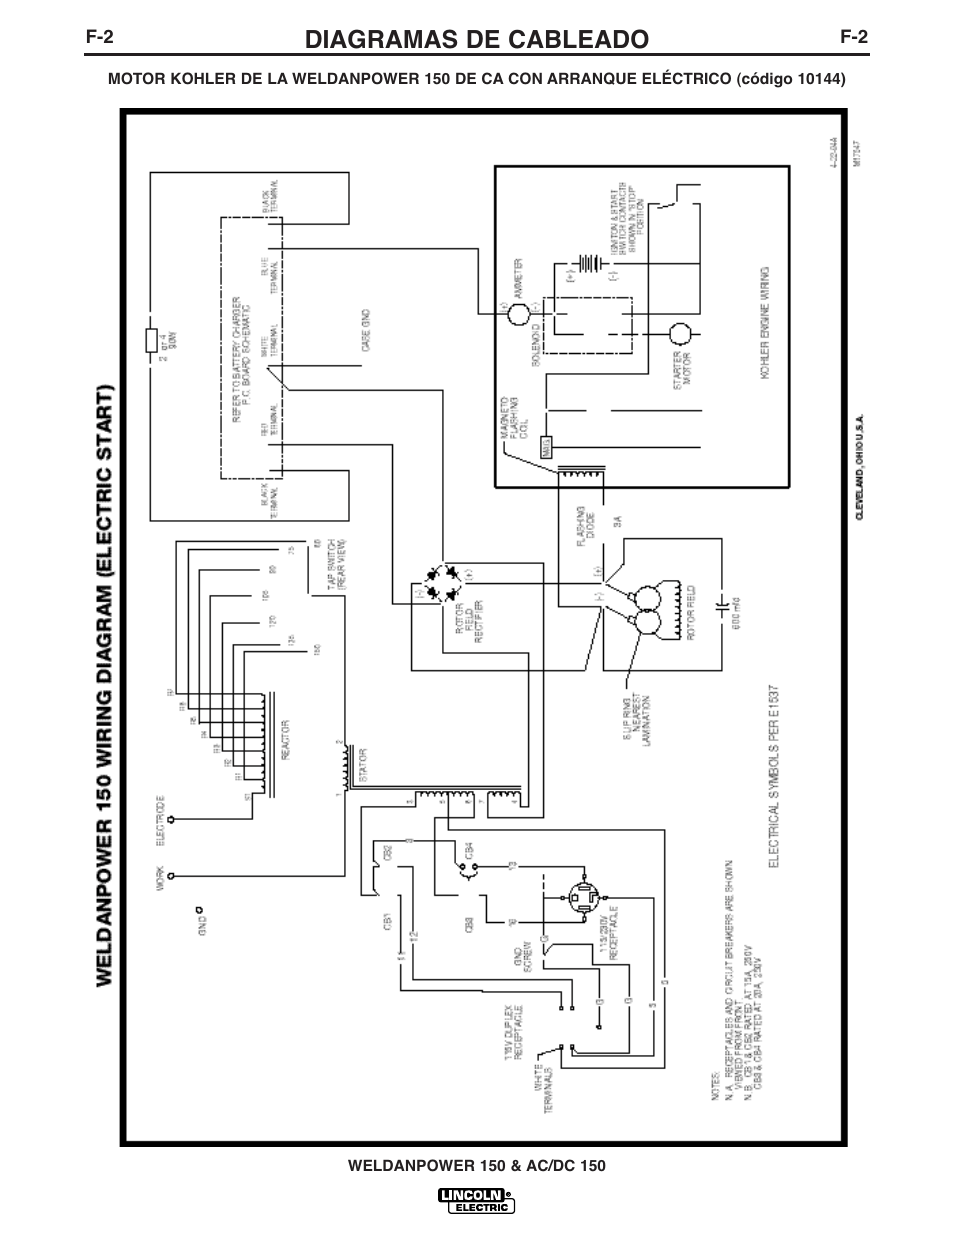 hight resolution of diagramas de cableado lincoln electric im413 weldanpower 150 user manual page 18 30